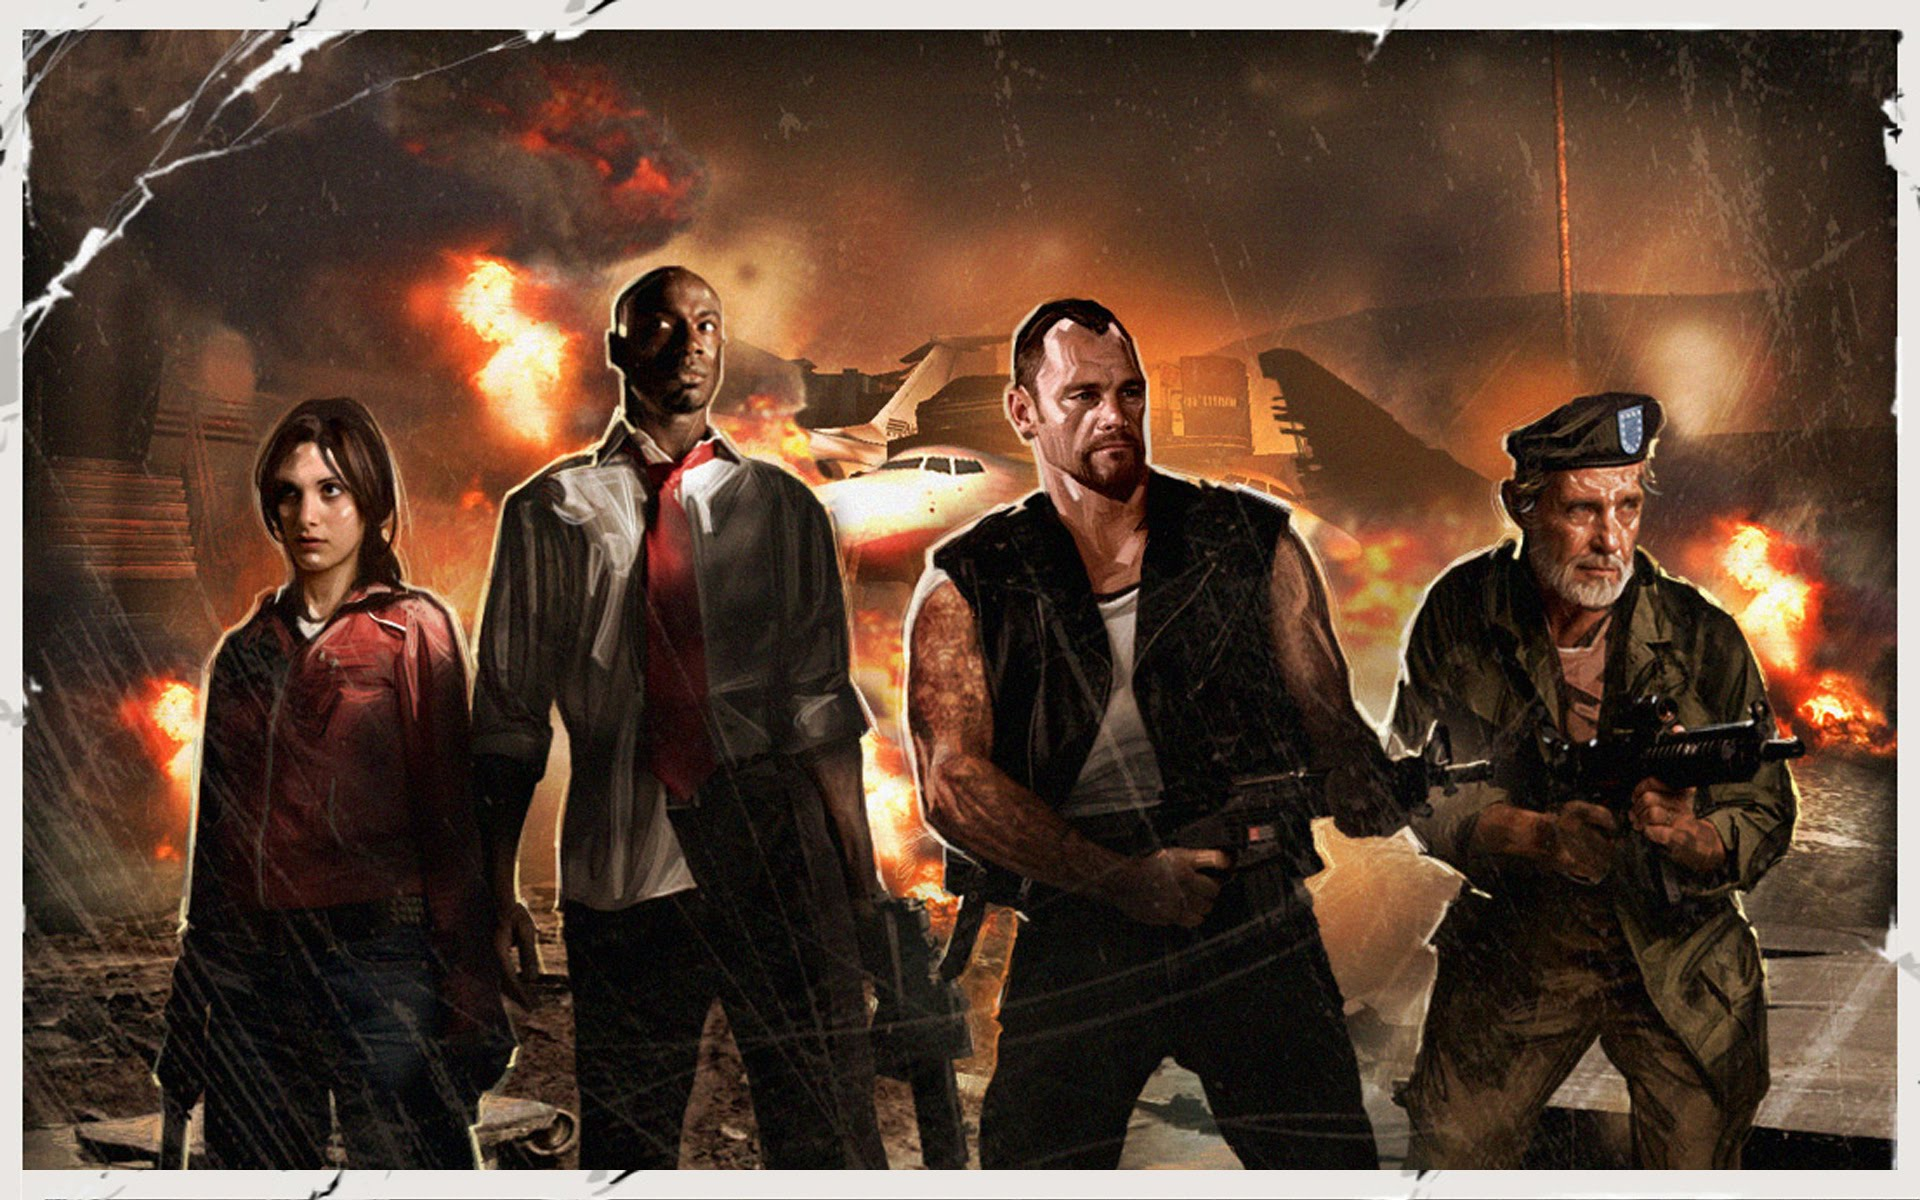 Valve says it's not working on Left 4 Dead 3